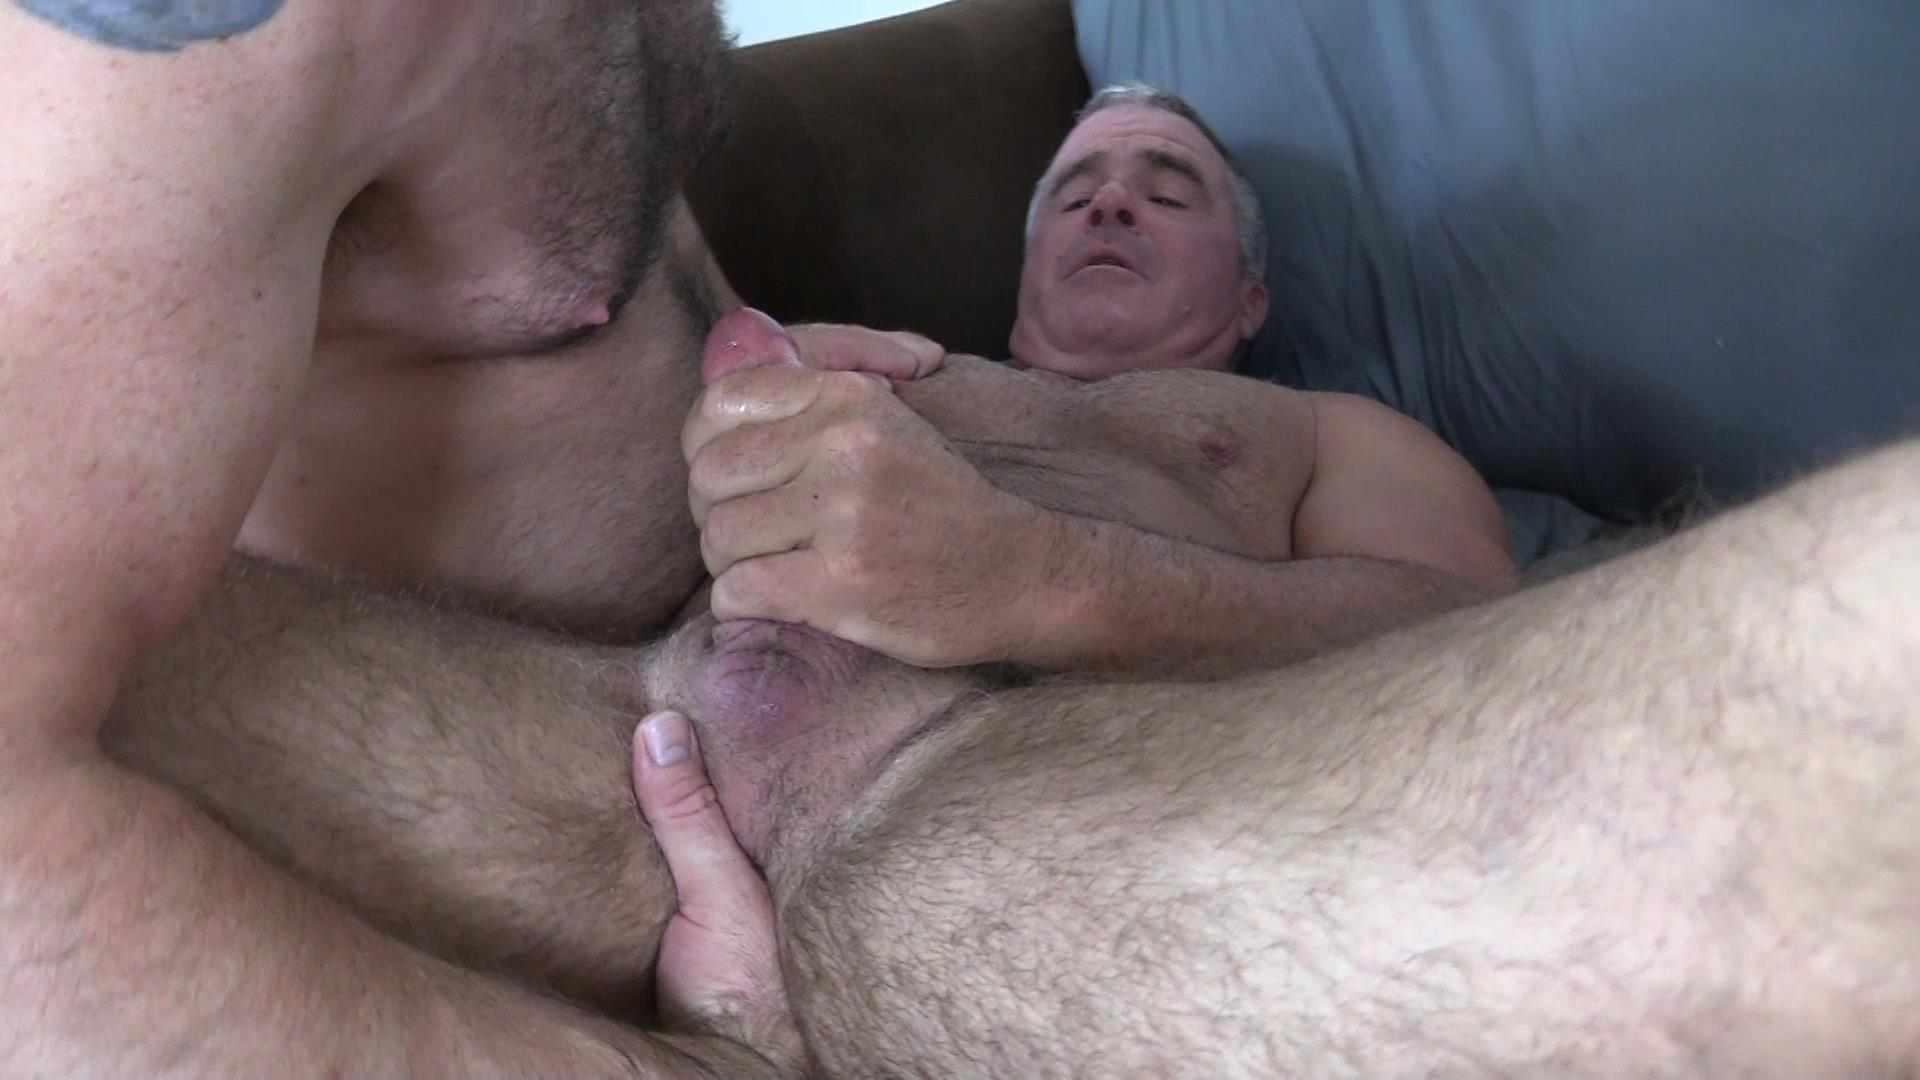 Topher-Phoenix-and-Dale-Savage-Hairy-Daddy-Bears-Gay-bareback-sex-video-24 Topher Phoenix Breeds Hairy Muscle Daddy Dale Savage